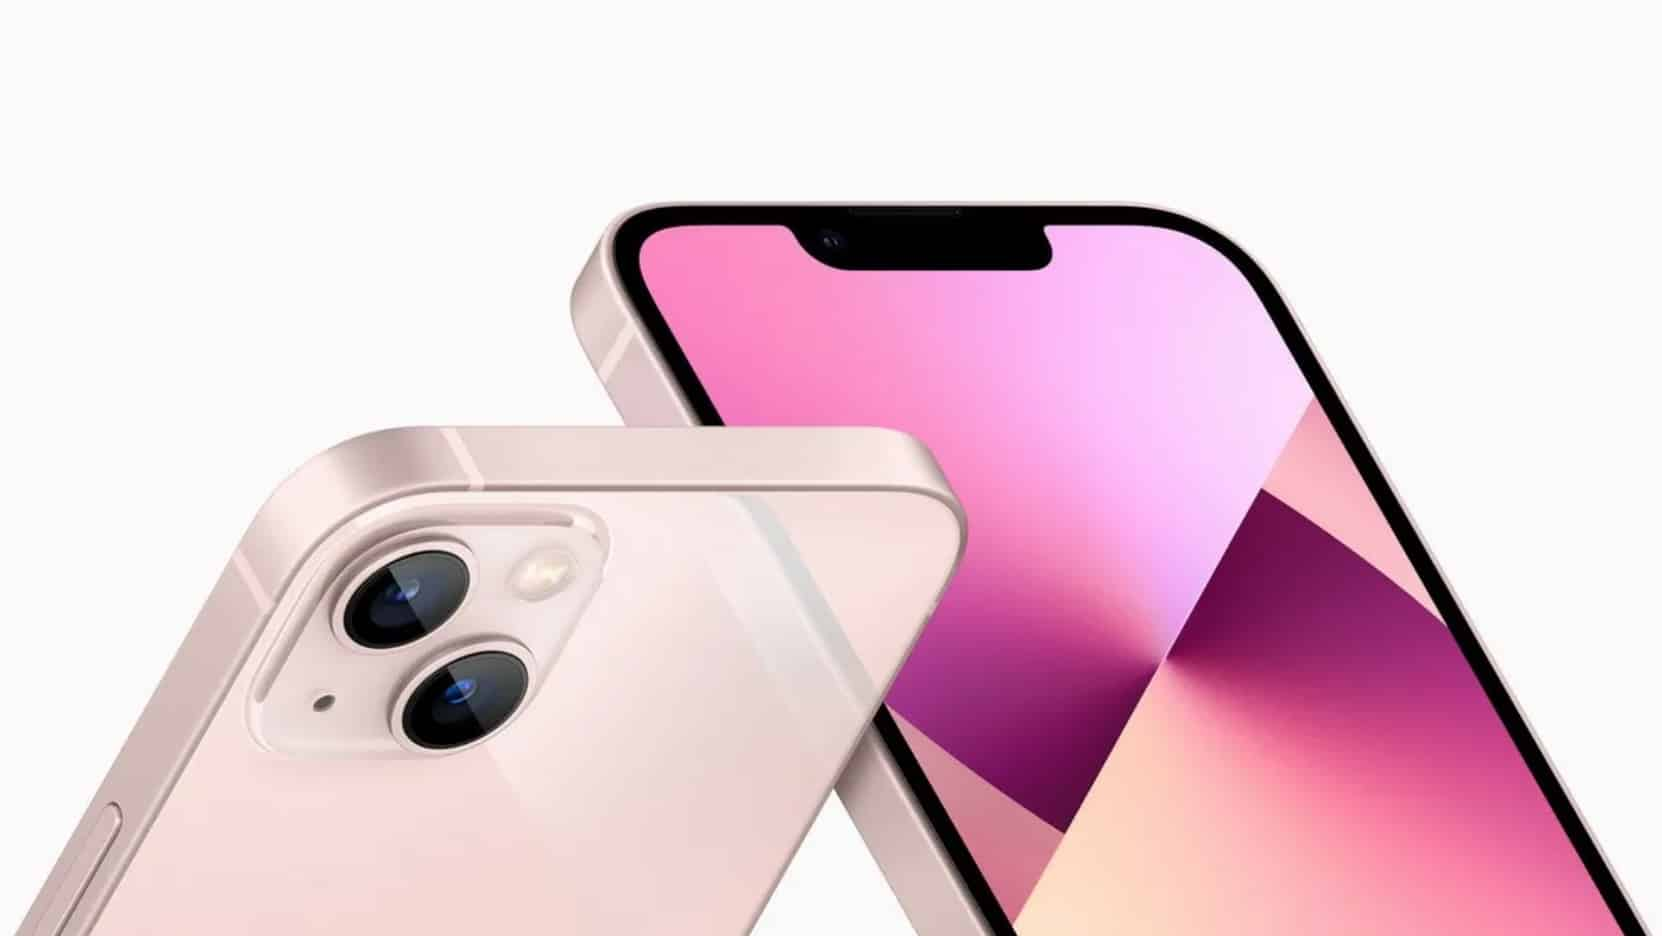 iPhone with foldable display could debut in 2024